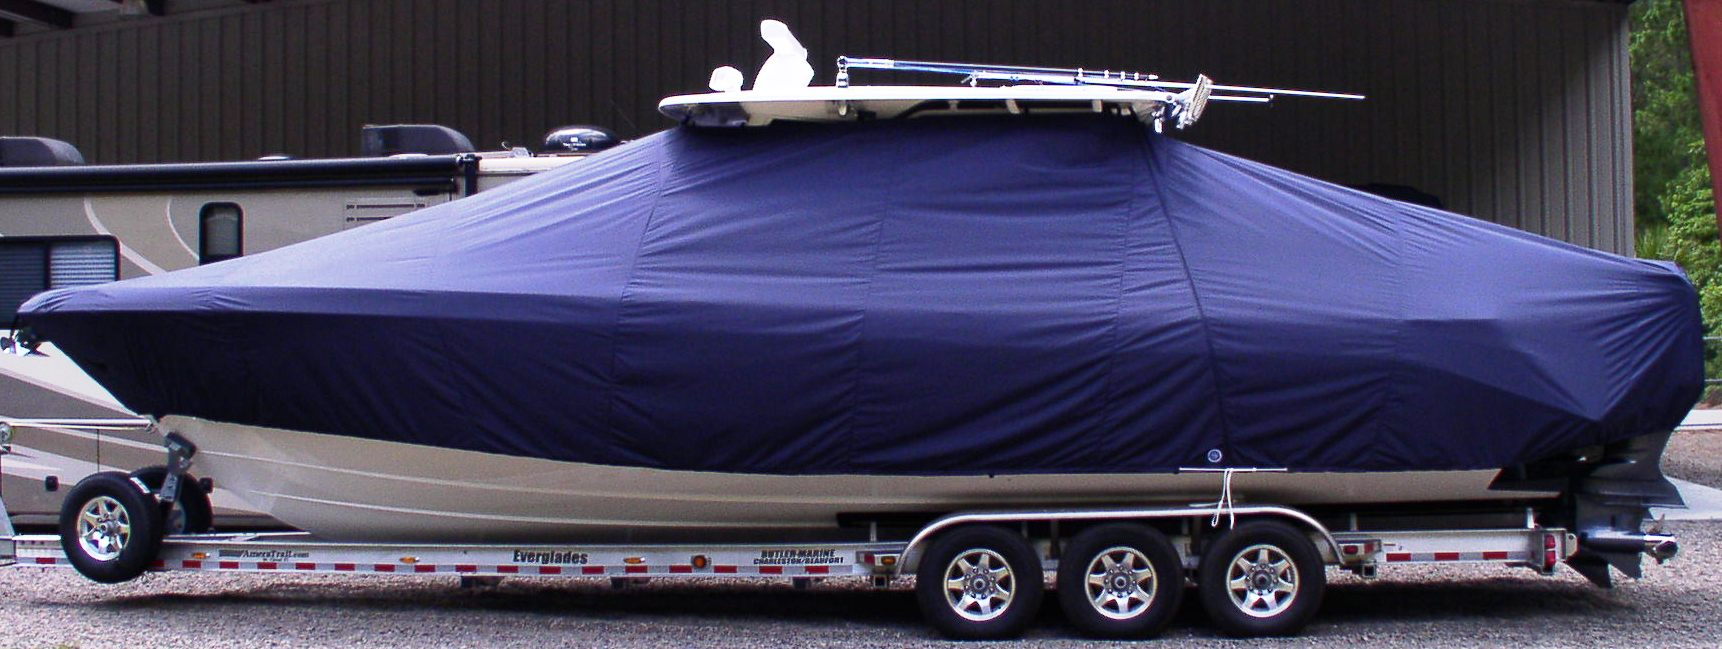 Everglades 355CC, 20xx, TTopCovers™ T-Top boat cover, port side